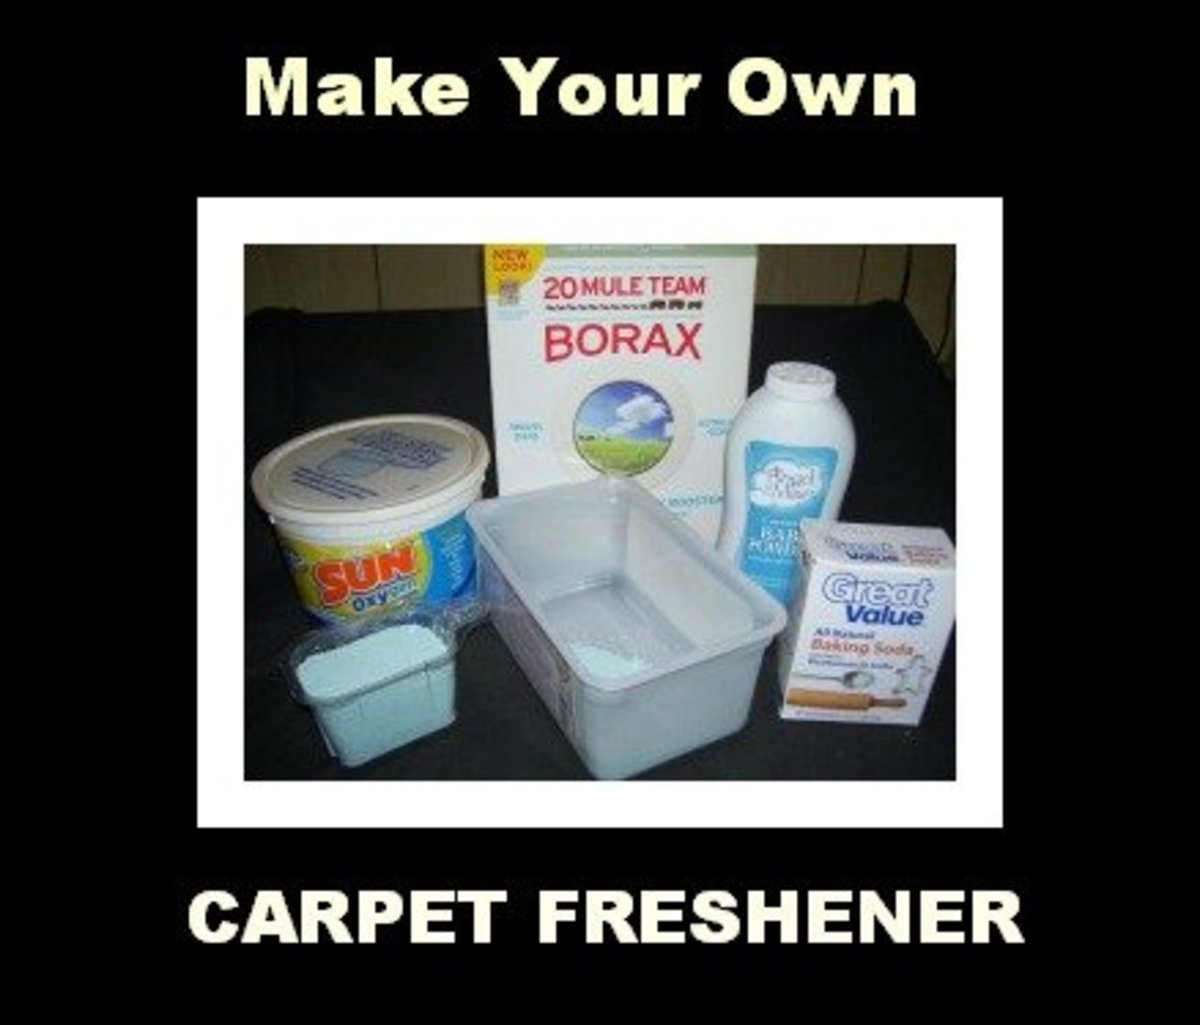 A cheaper, healthier DIY carpet de-odorizer